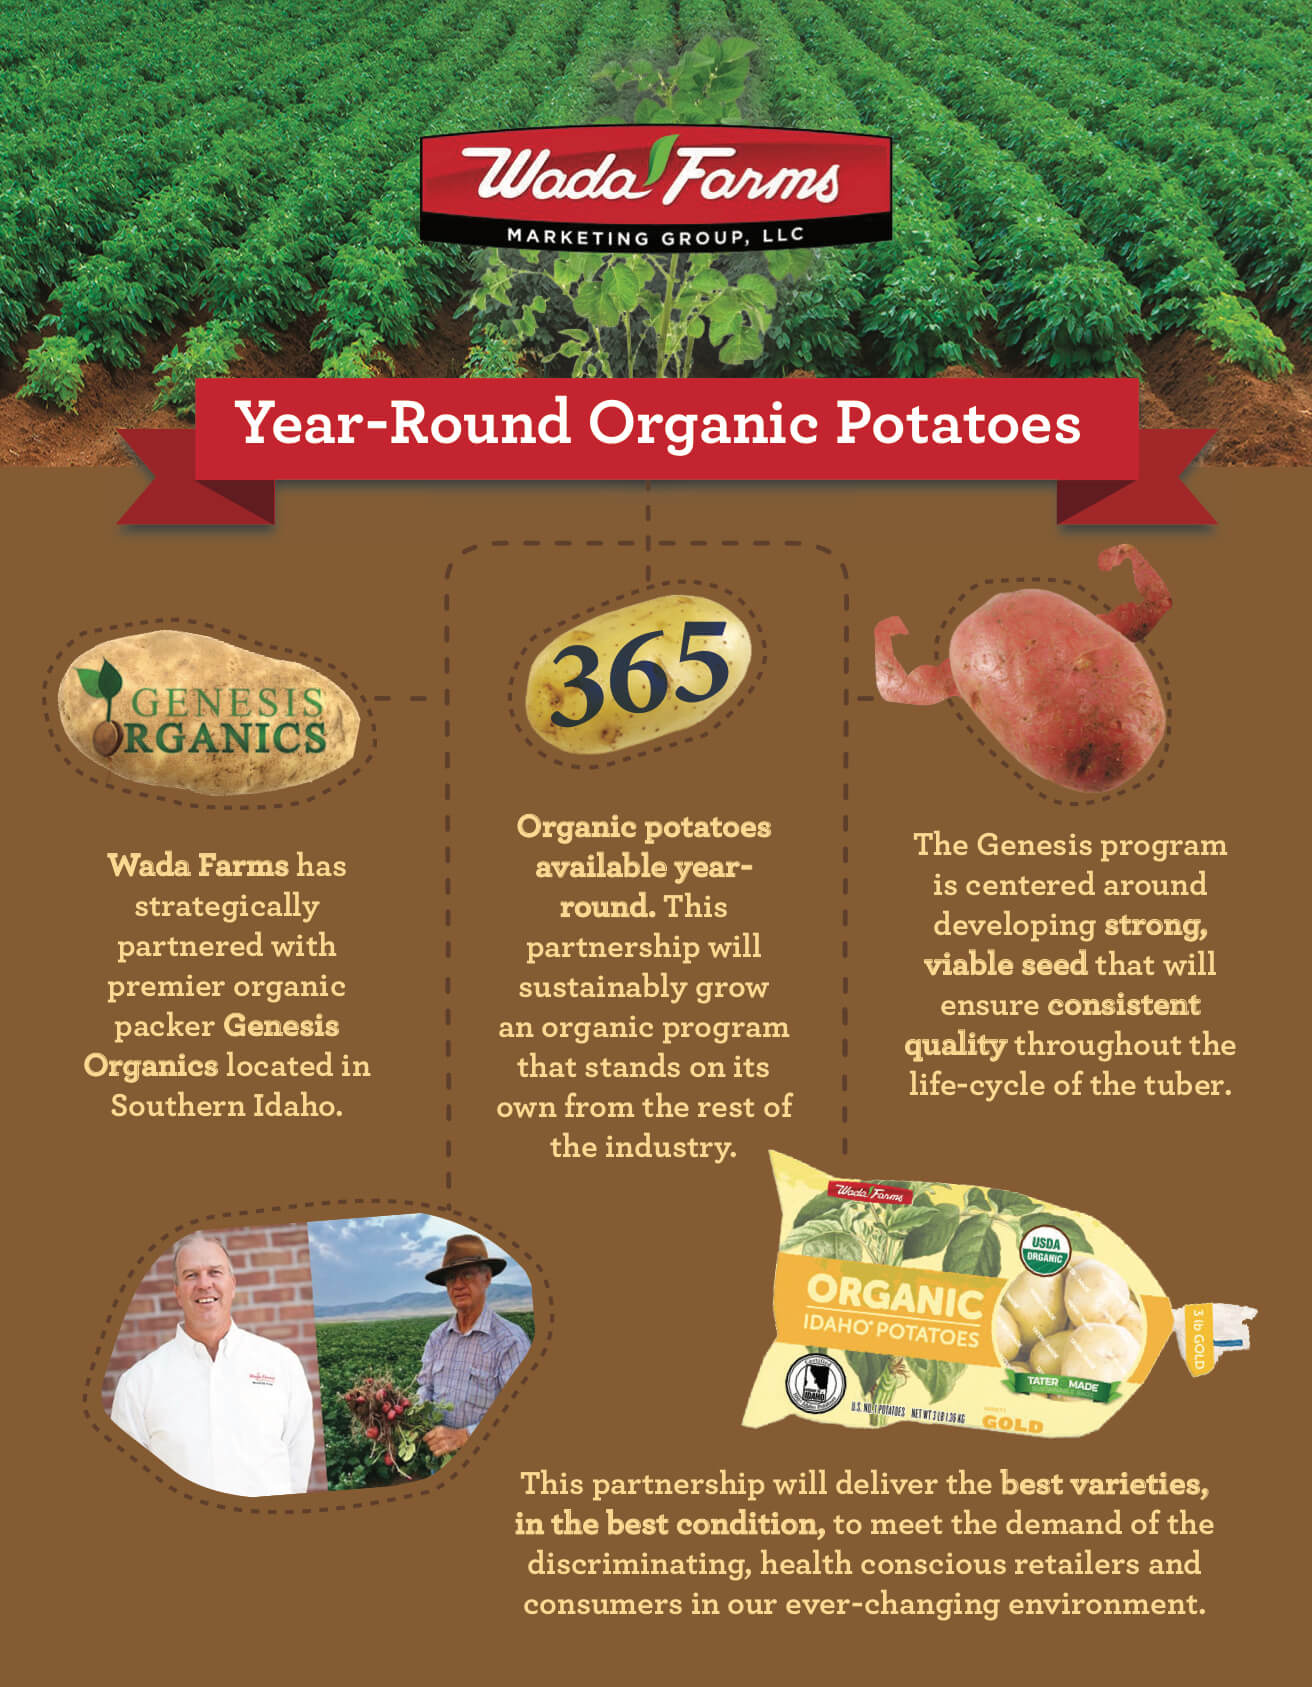 Wada Farms - Year-Round Organic Potatoes